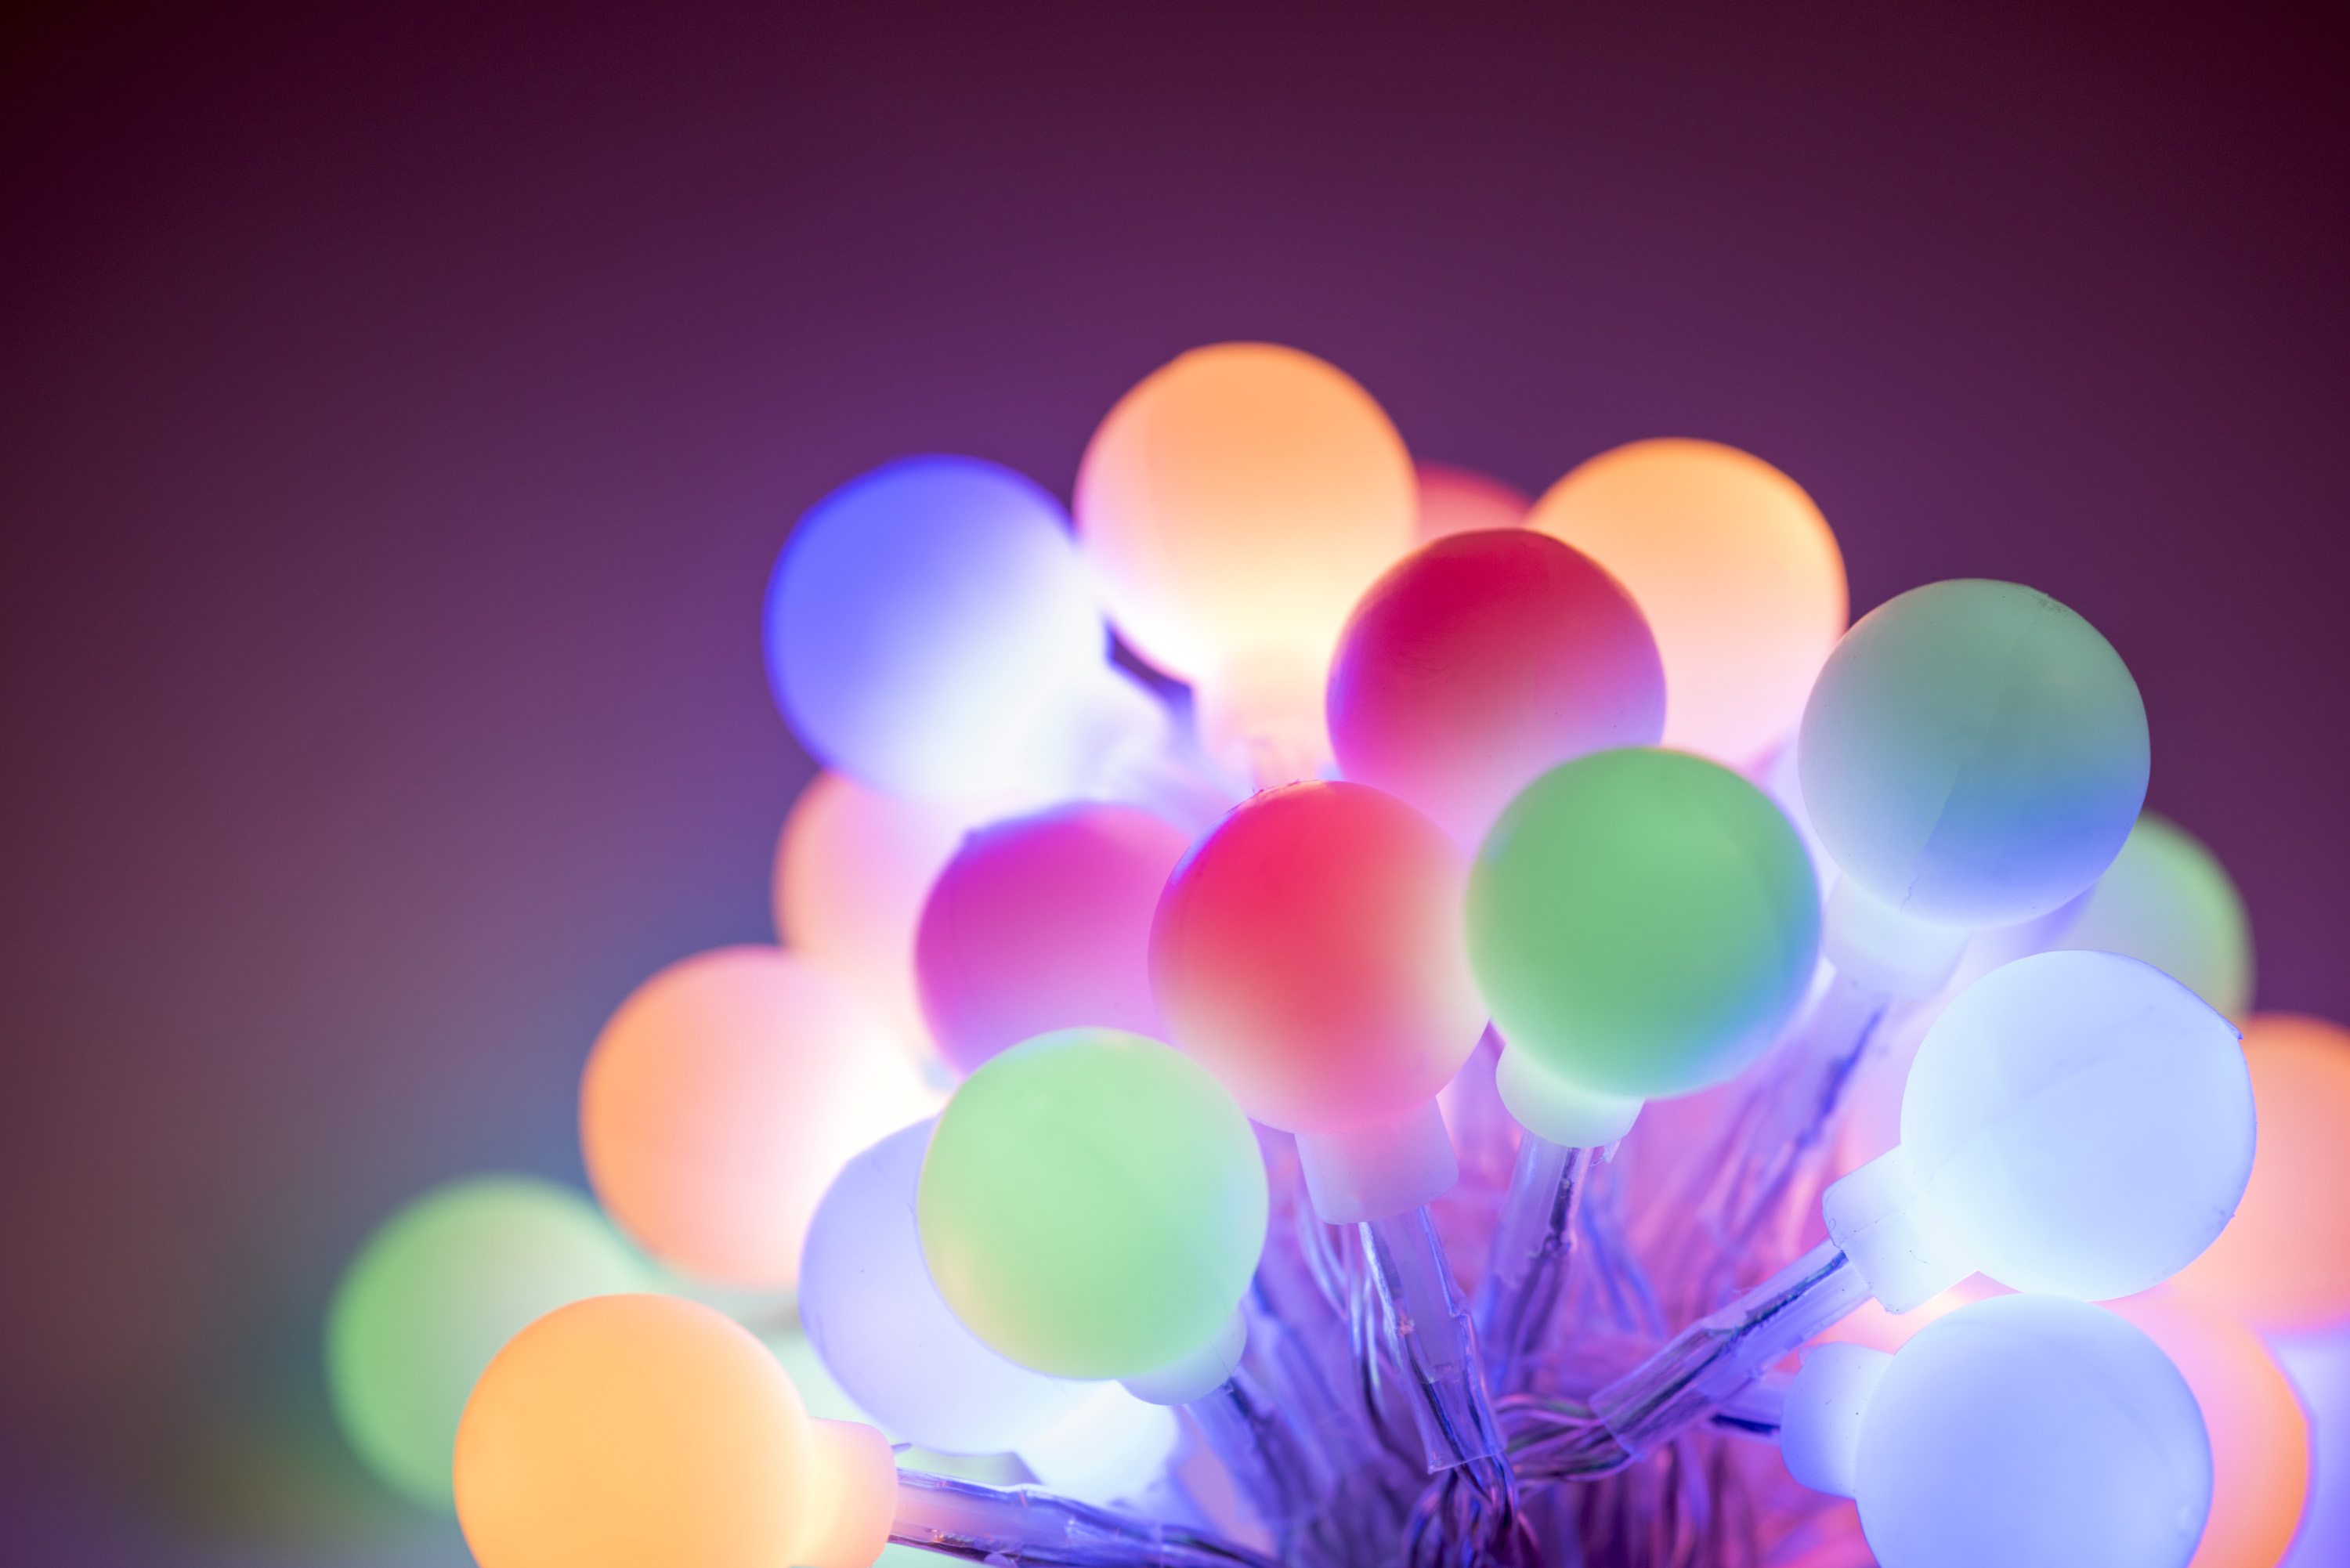 Glowing cluster of round Christmas berry lights in assorted muted hues shining in the darkness for a festive holiday background